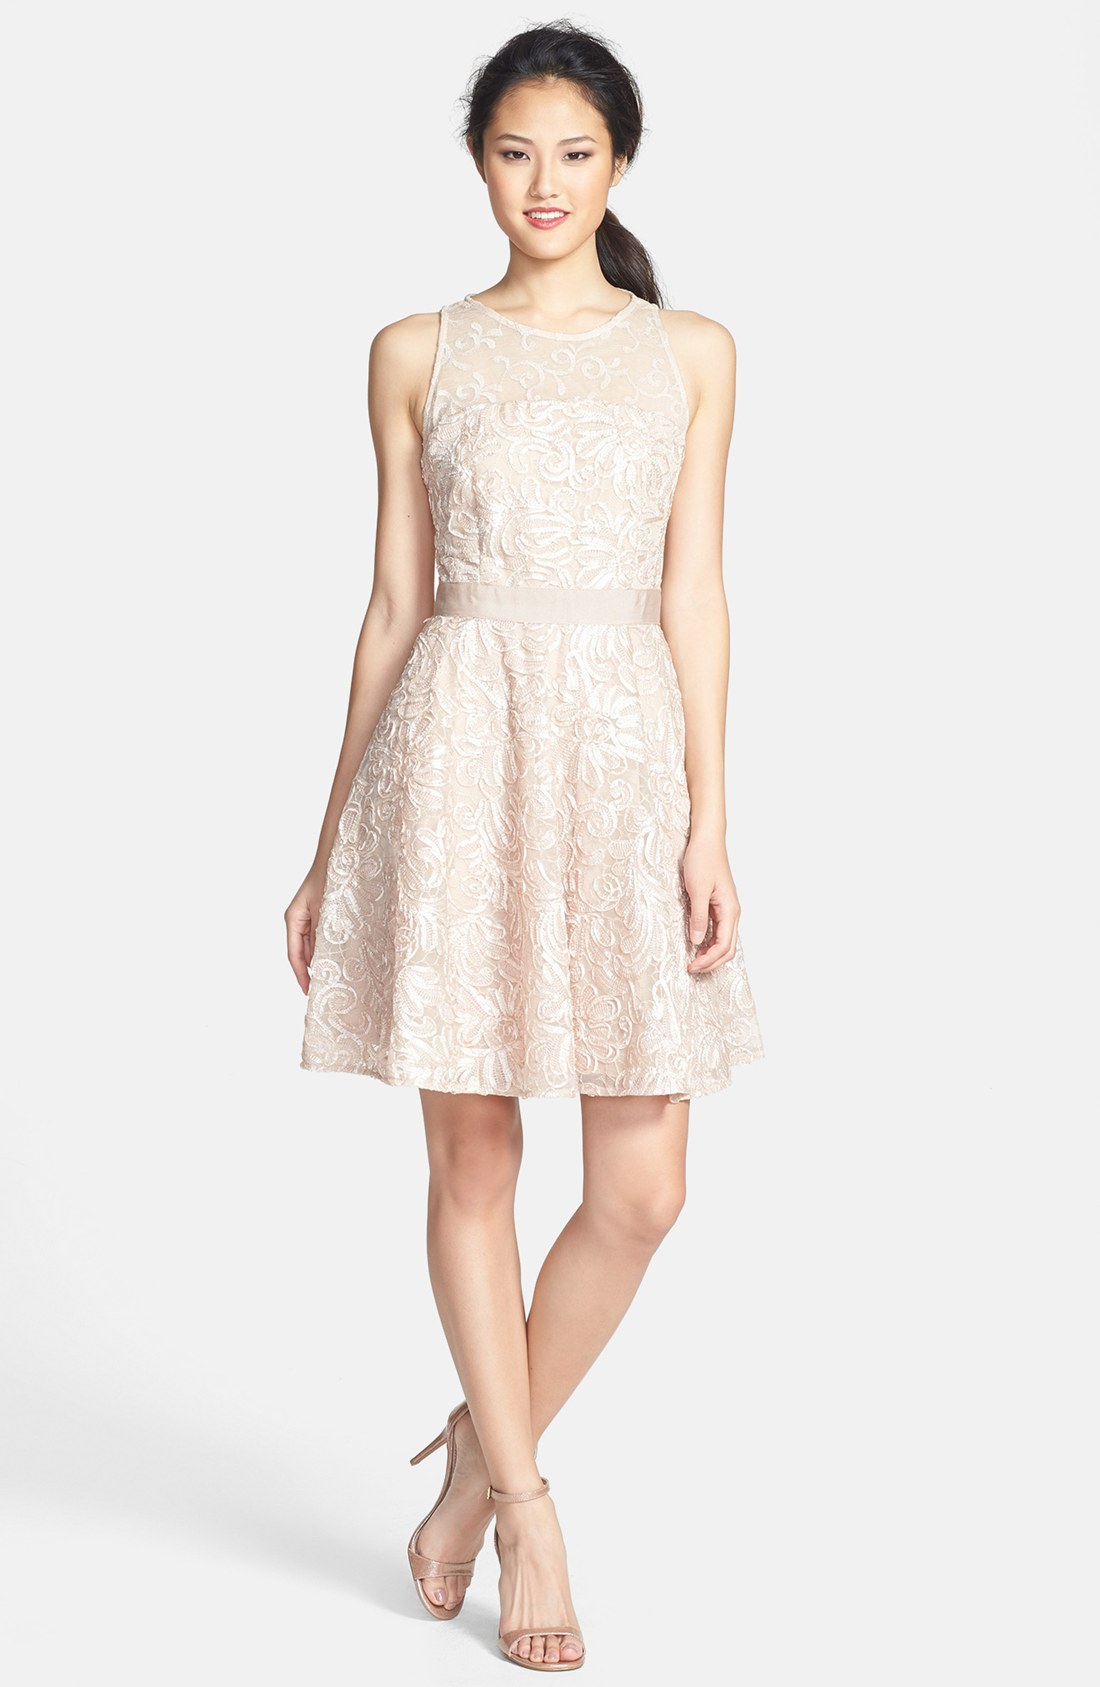 Lace Top Fit And Flare Dress & Help You Stand Out